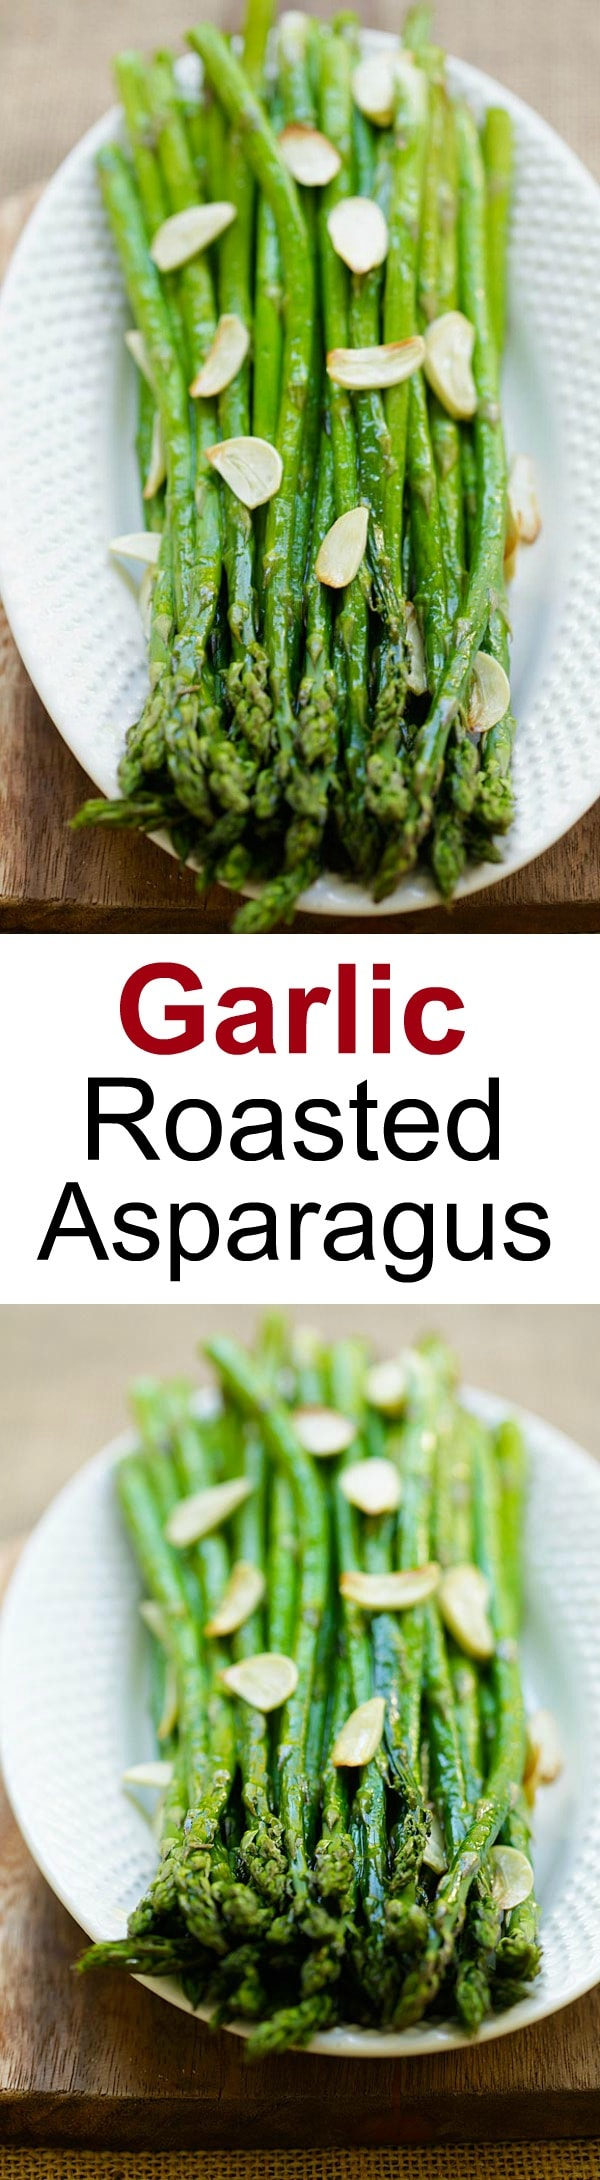 Garlic Roasted Asparagus – healthy oven-baked asparagus with garlic. Four ingredients and takes only 12 mins to make this quick and easy side dish | rasamalaysia.com